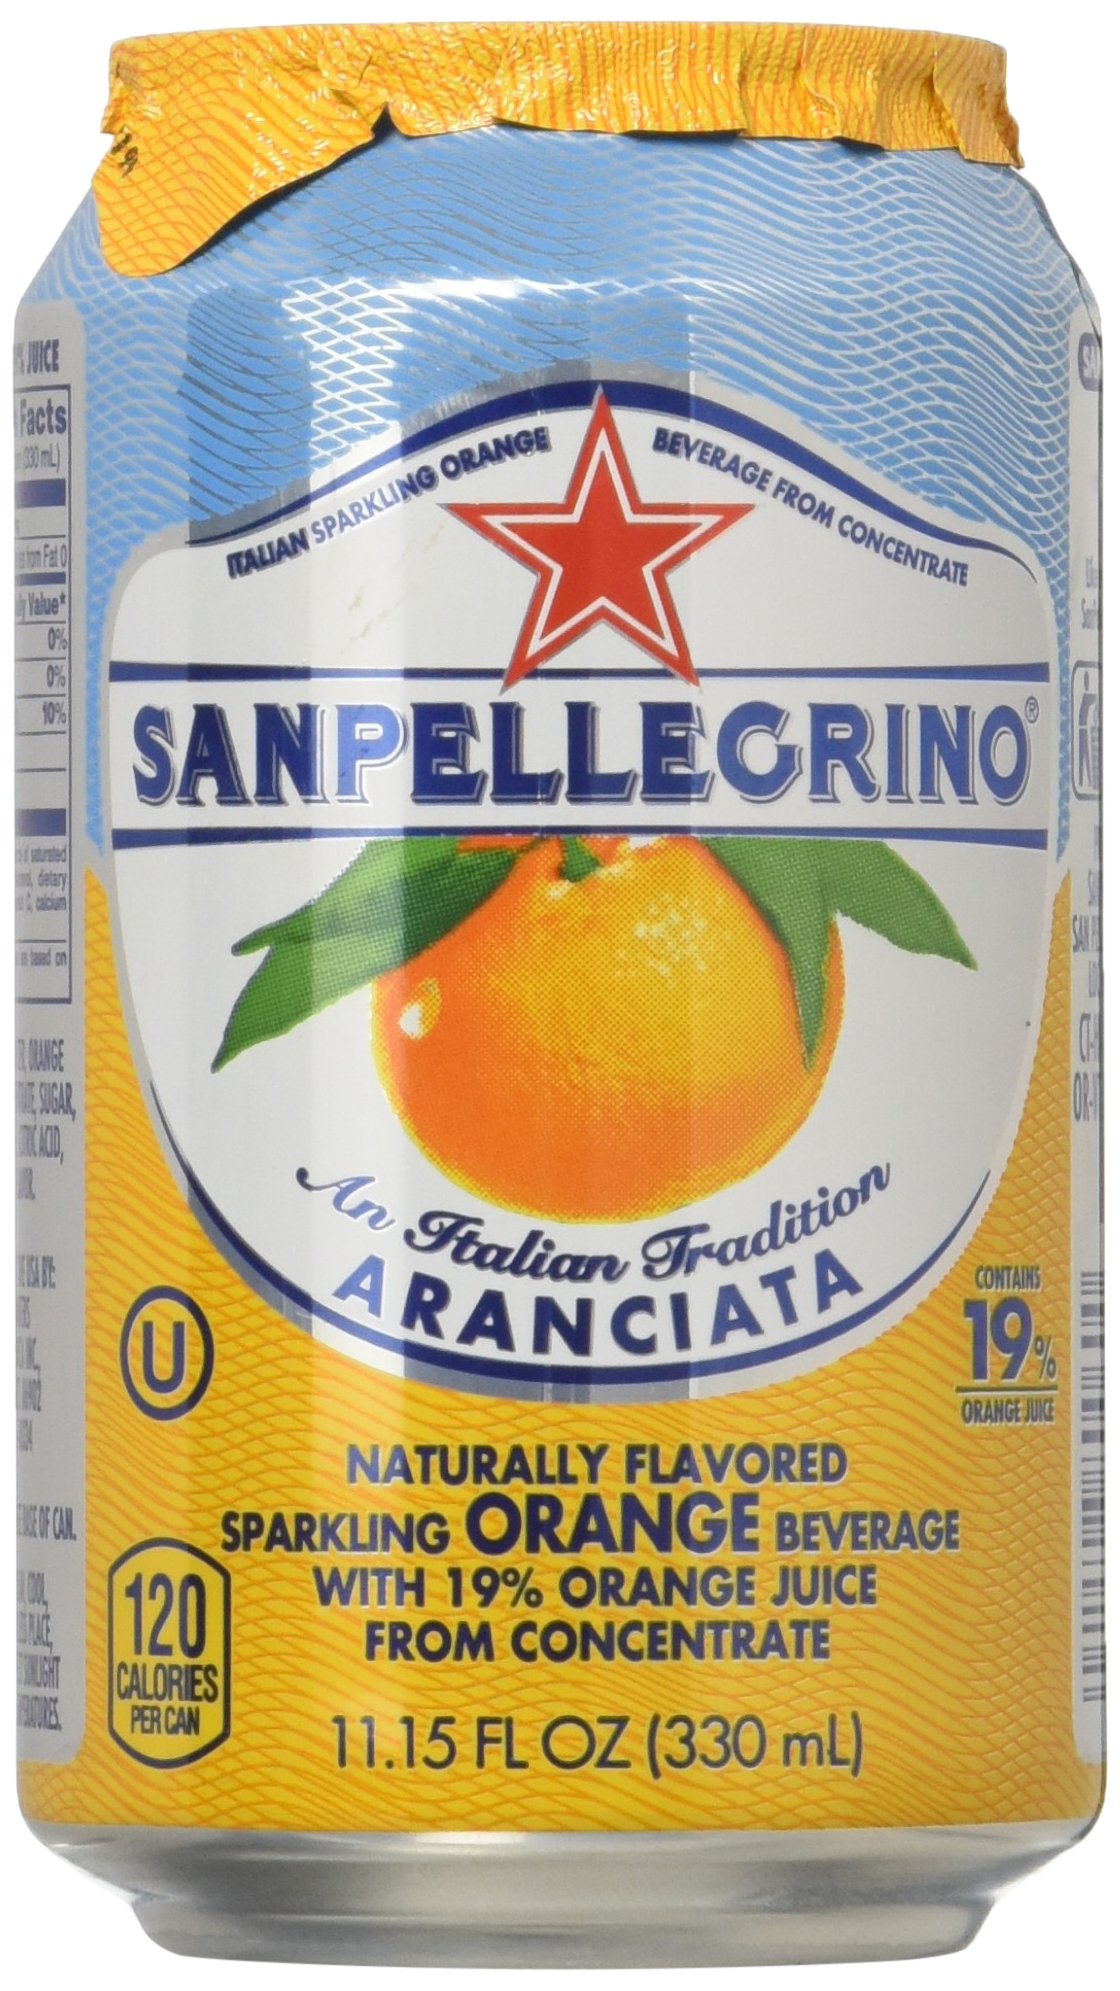 Sanpellegrino Orange Sparkling Fruit Beverage, 11.15 fl oz. Cans (6 Count)